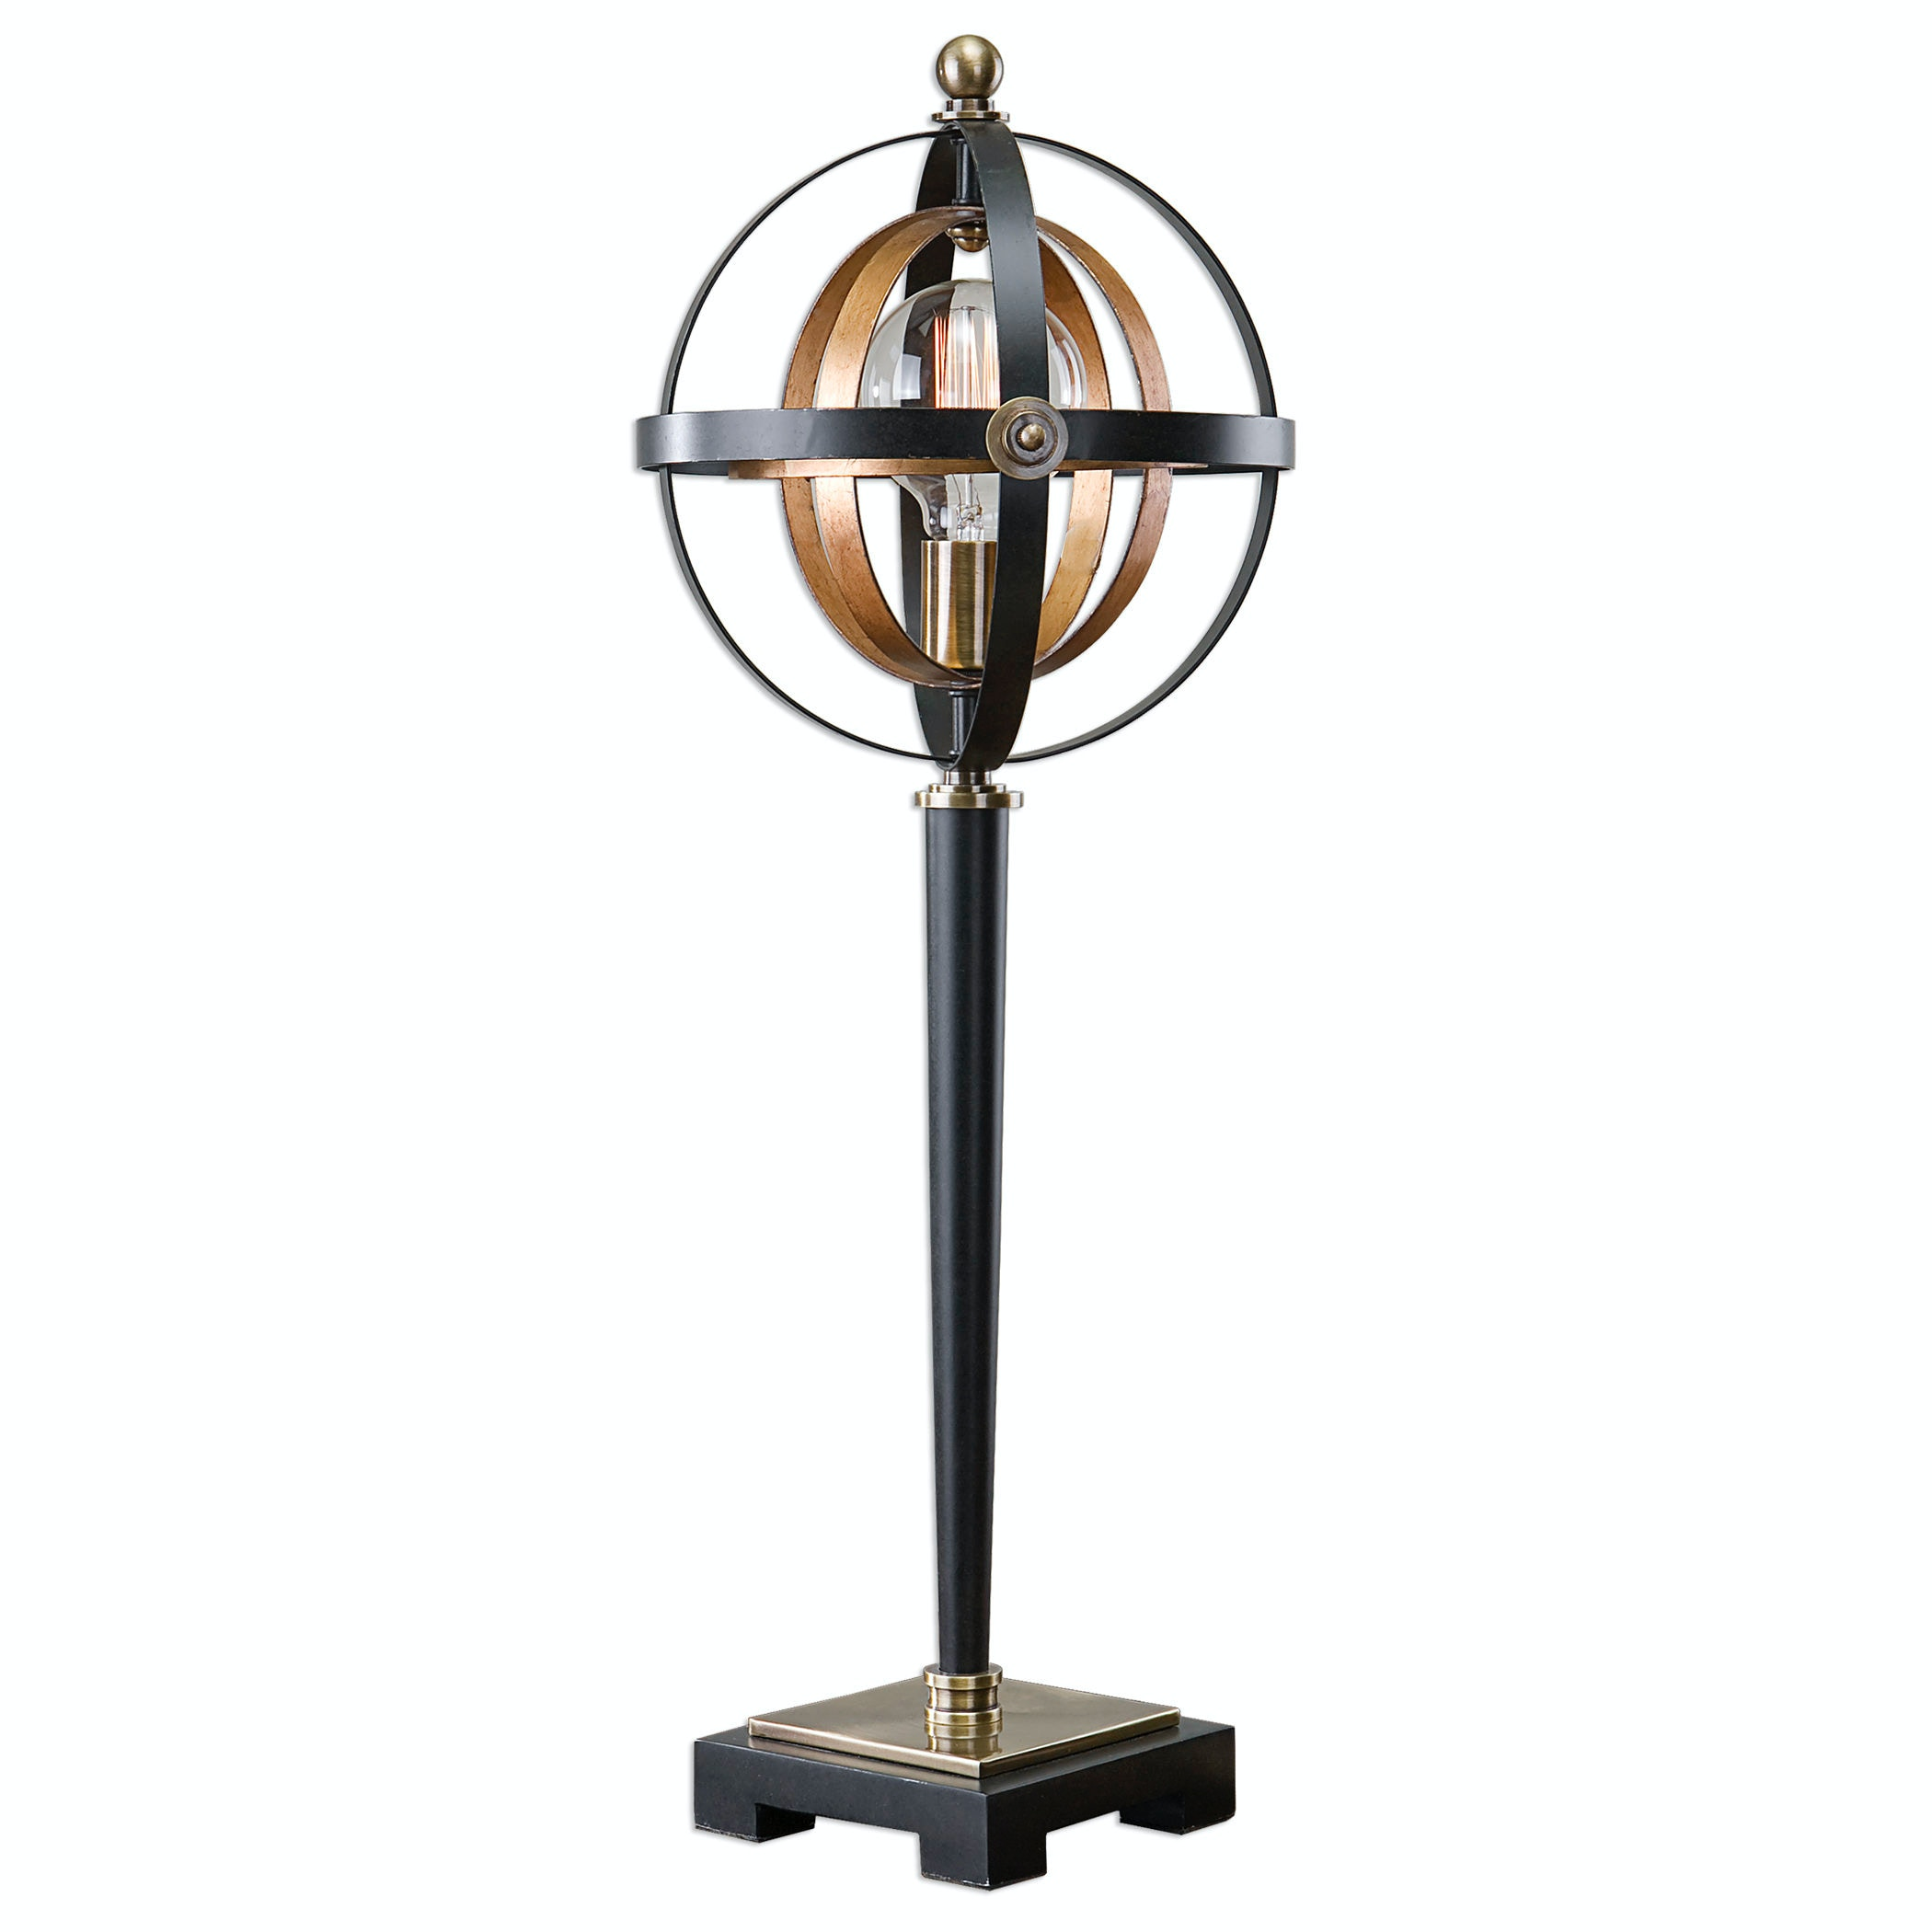 Uttermost Lamps And Lighting Rondure Sphere Table Lamp 29212 1